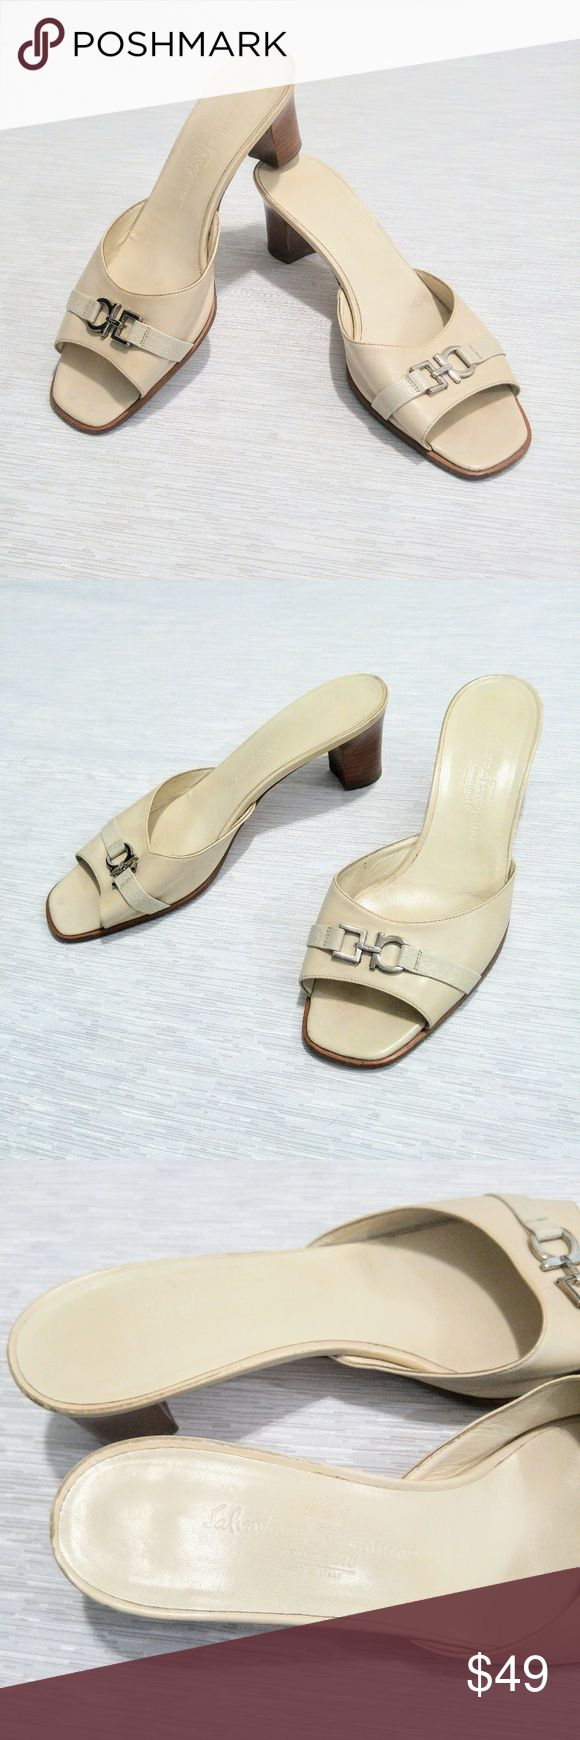 Salvatore Ferragamo Cream Heeled Sandals size 10 Pre-loved Salvatore Ferragamo Boutique heeled sandals Made in Italy. Cream tone leather with silver logo embellishment. Some wear as pictured. Size is worn off, but I believe they are size 10 (possibly 10.5). Last photo shows them pictured next to another pair of size 10 sandals. The measurements almost identically match the size 10. Some scuffing around the back of footbed is the biggest flaw.  Shipped within 24 hours. Offers welcomed and…